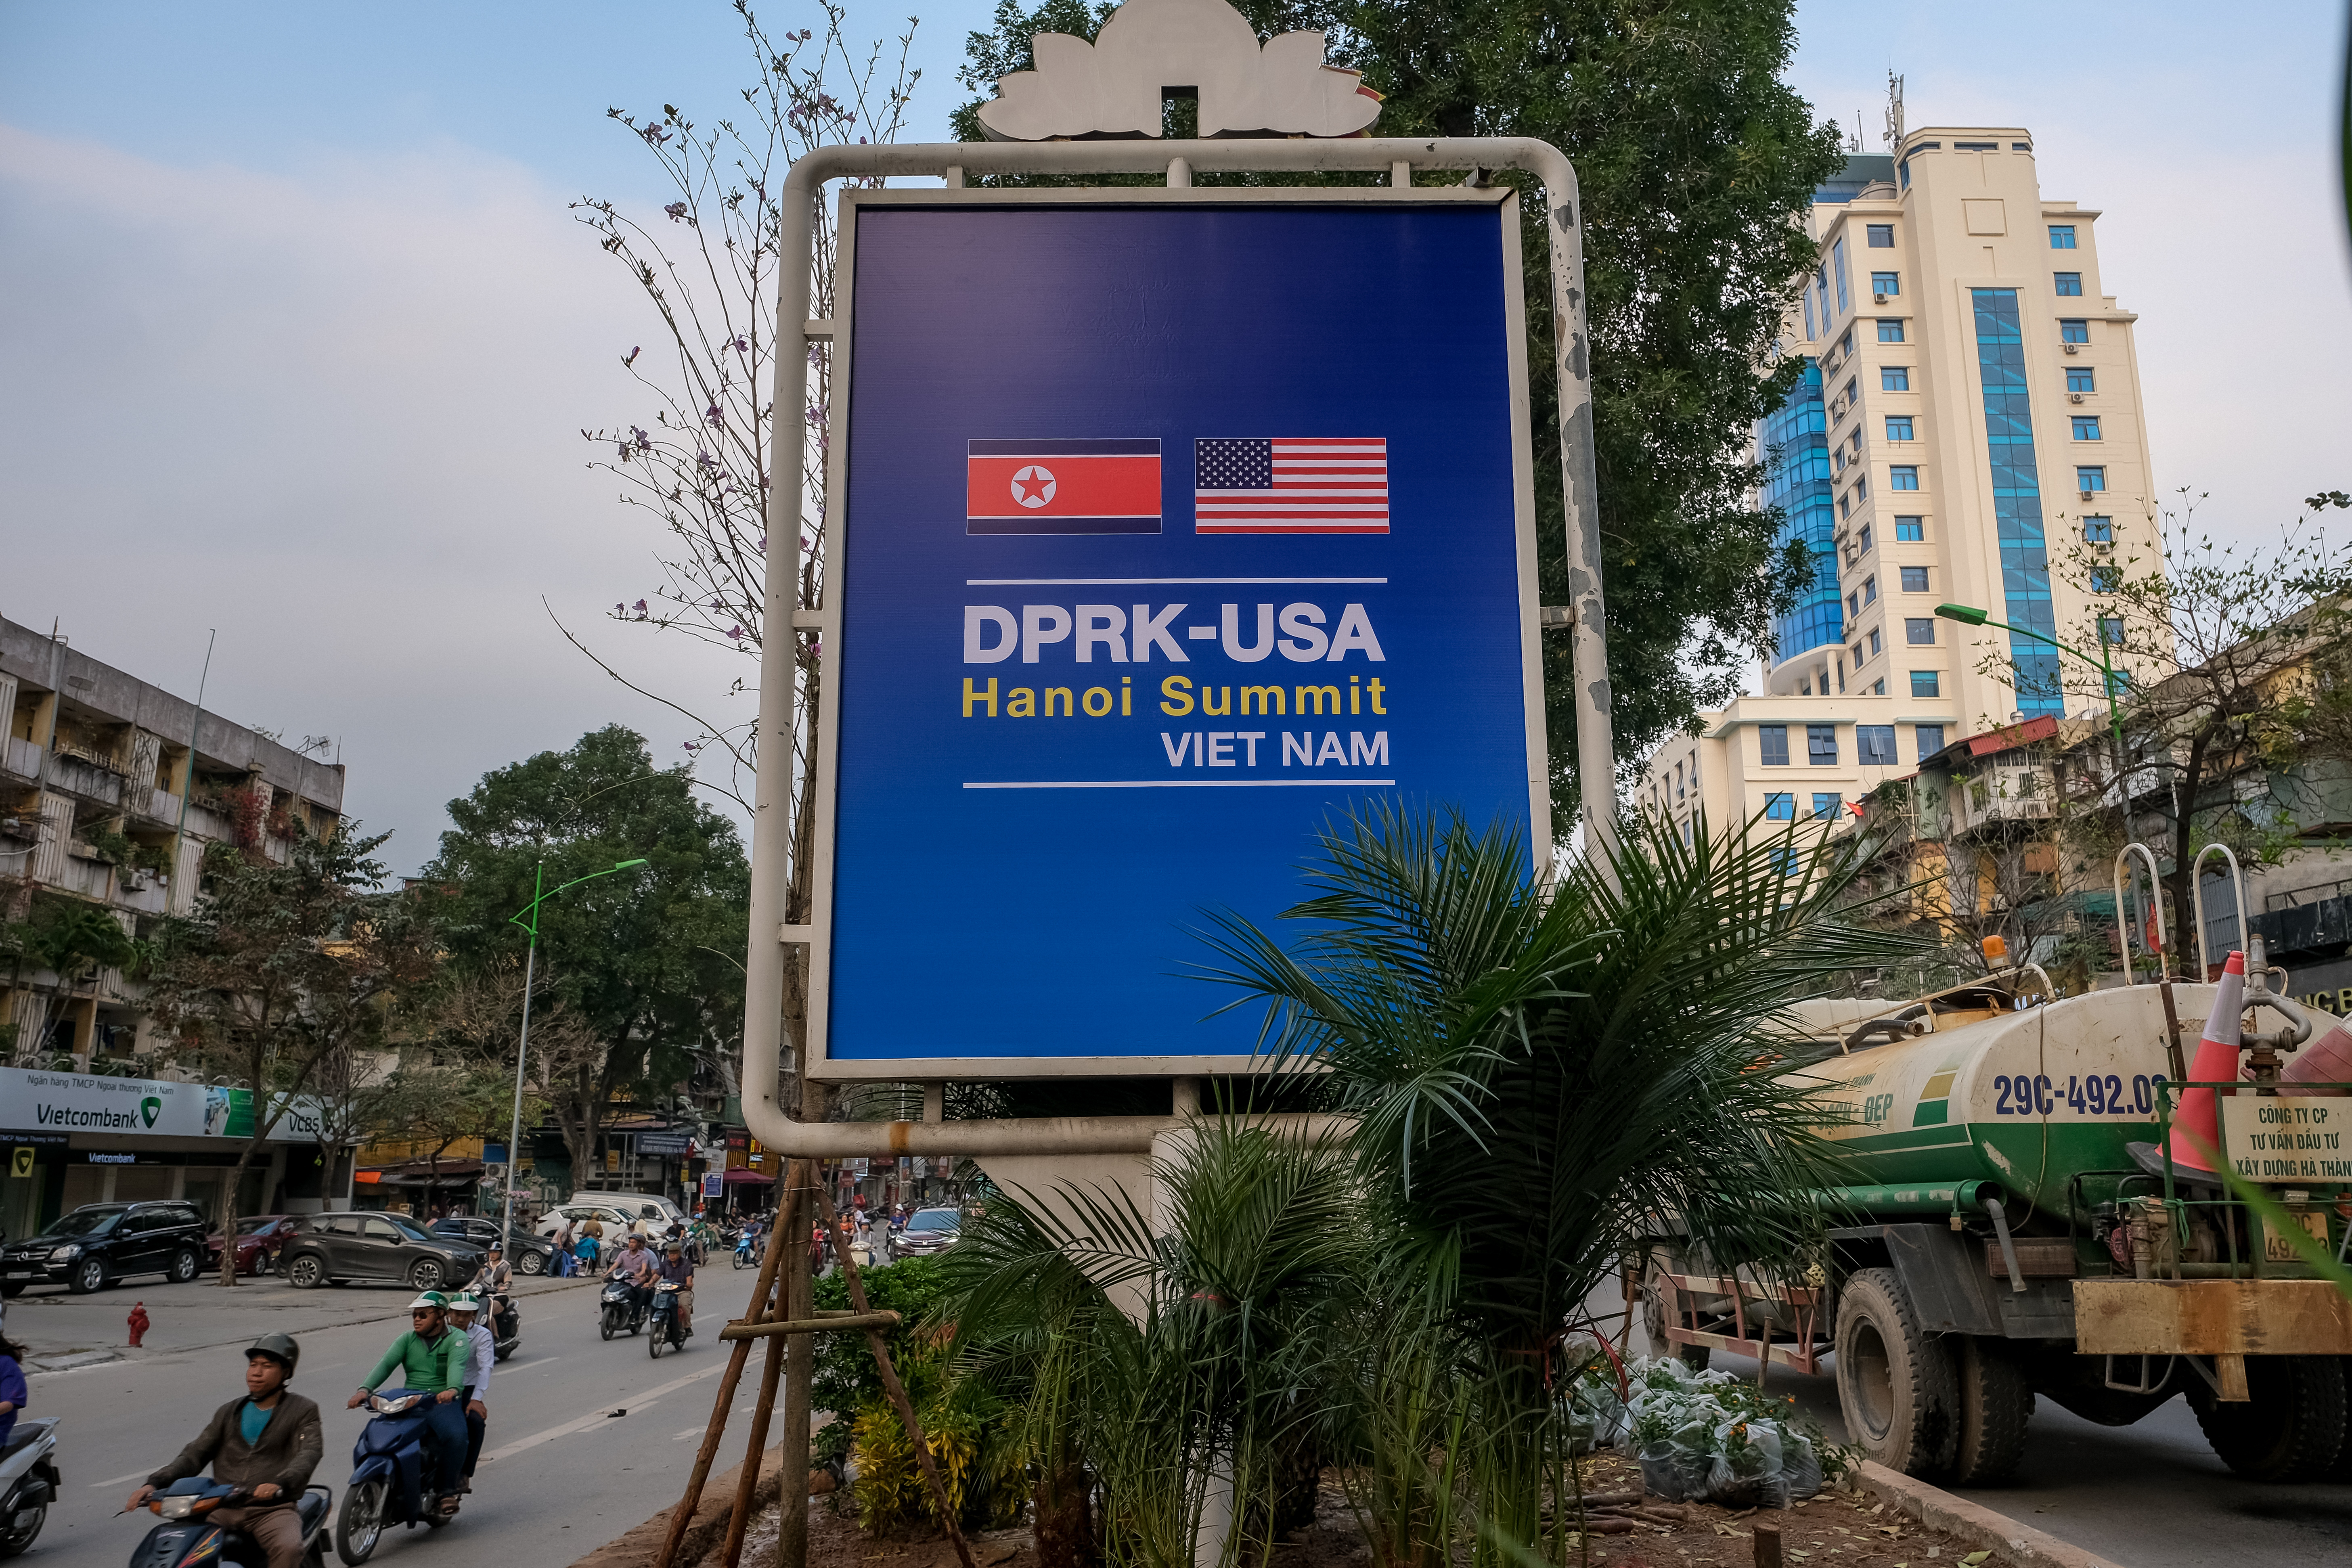 A public signboard welcomes the upcoming summit between U.S. President Donald Trump and North Korean leader Kim Jong Un on Giang Vo street near U.S. Embassy on February 20, 2019 in Hanoi, Vietnam. (Photo by Linh Pham/Getty Images)